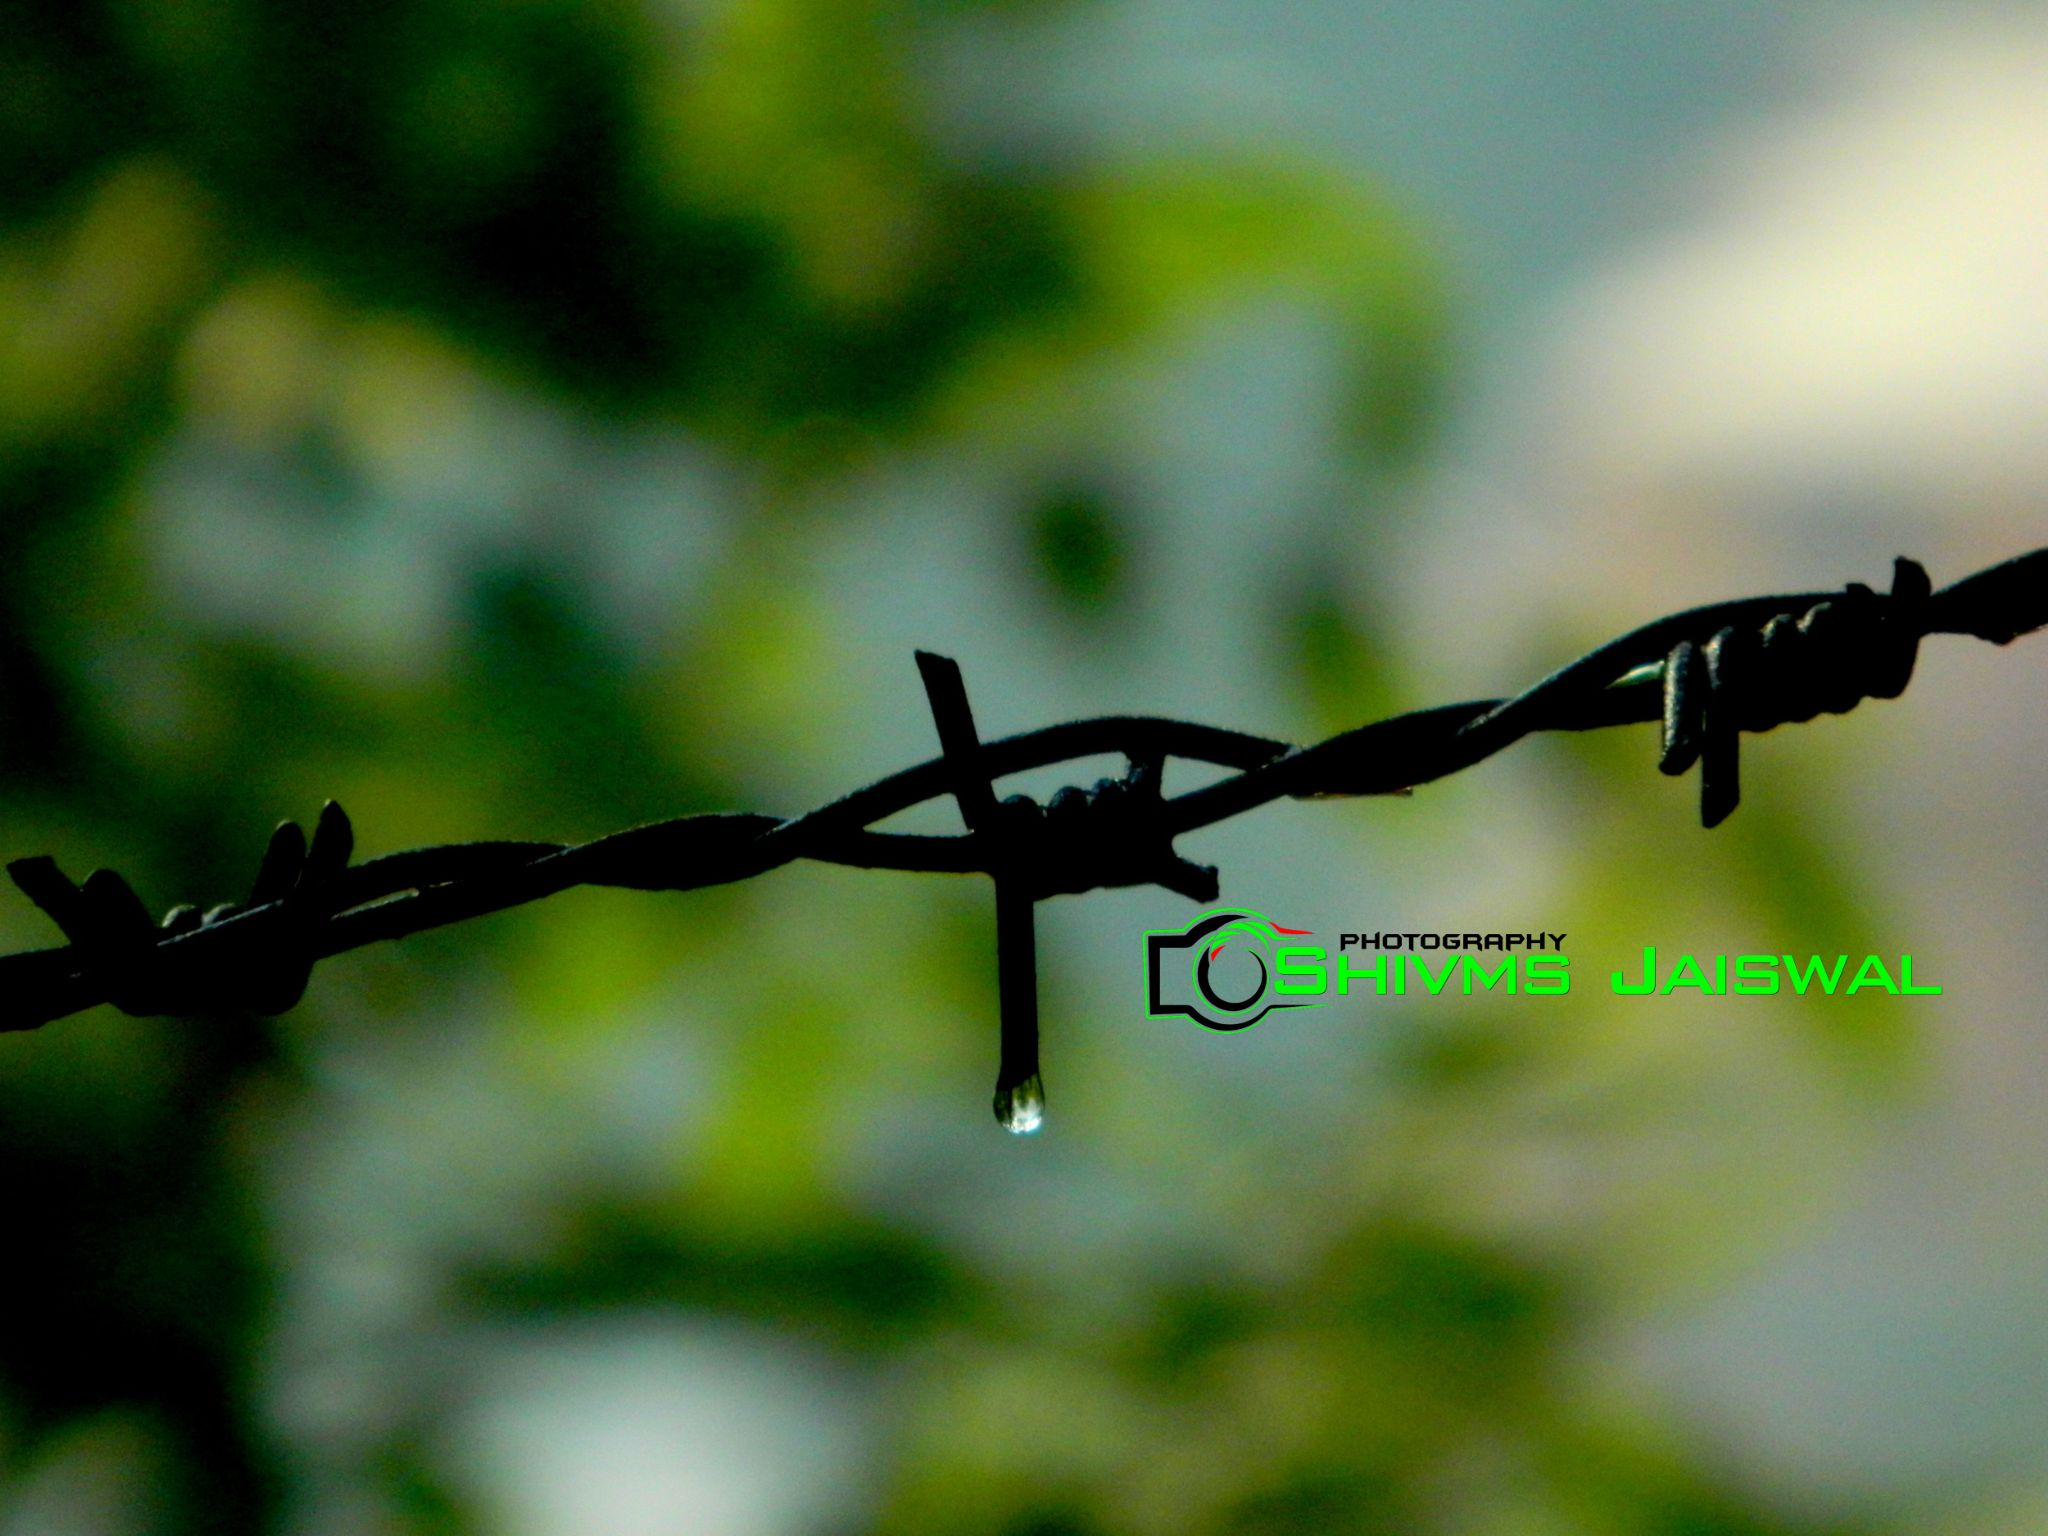 Untitled by Shivms Jaiswal